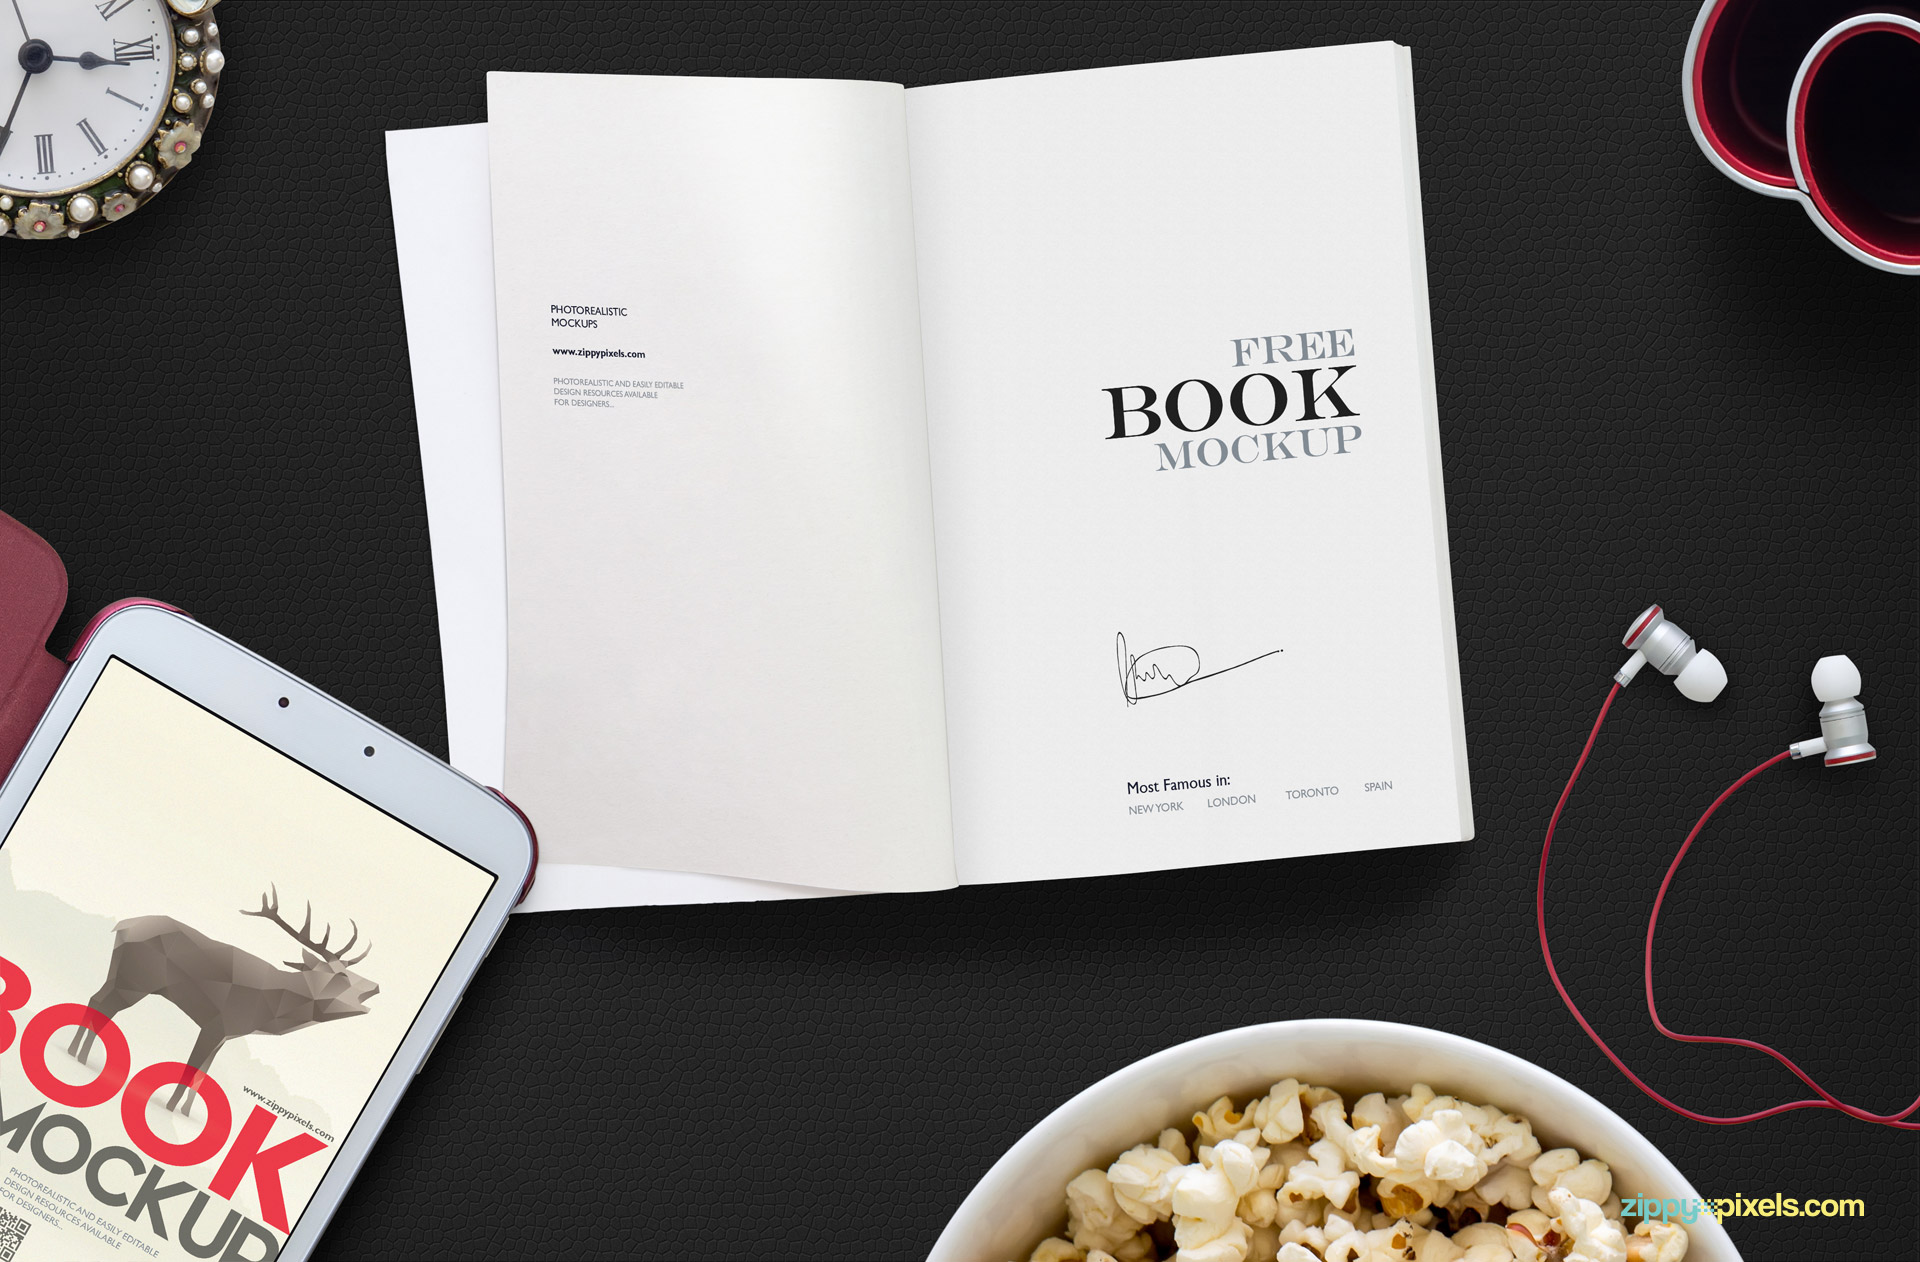 An open book mockup scene along with tablet, popcorn bowl, hands-free, clock and pen holder.